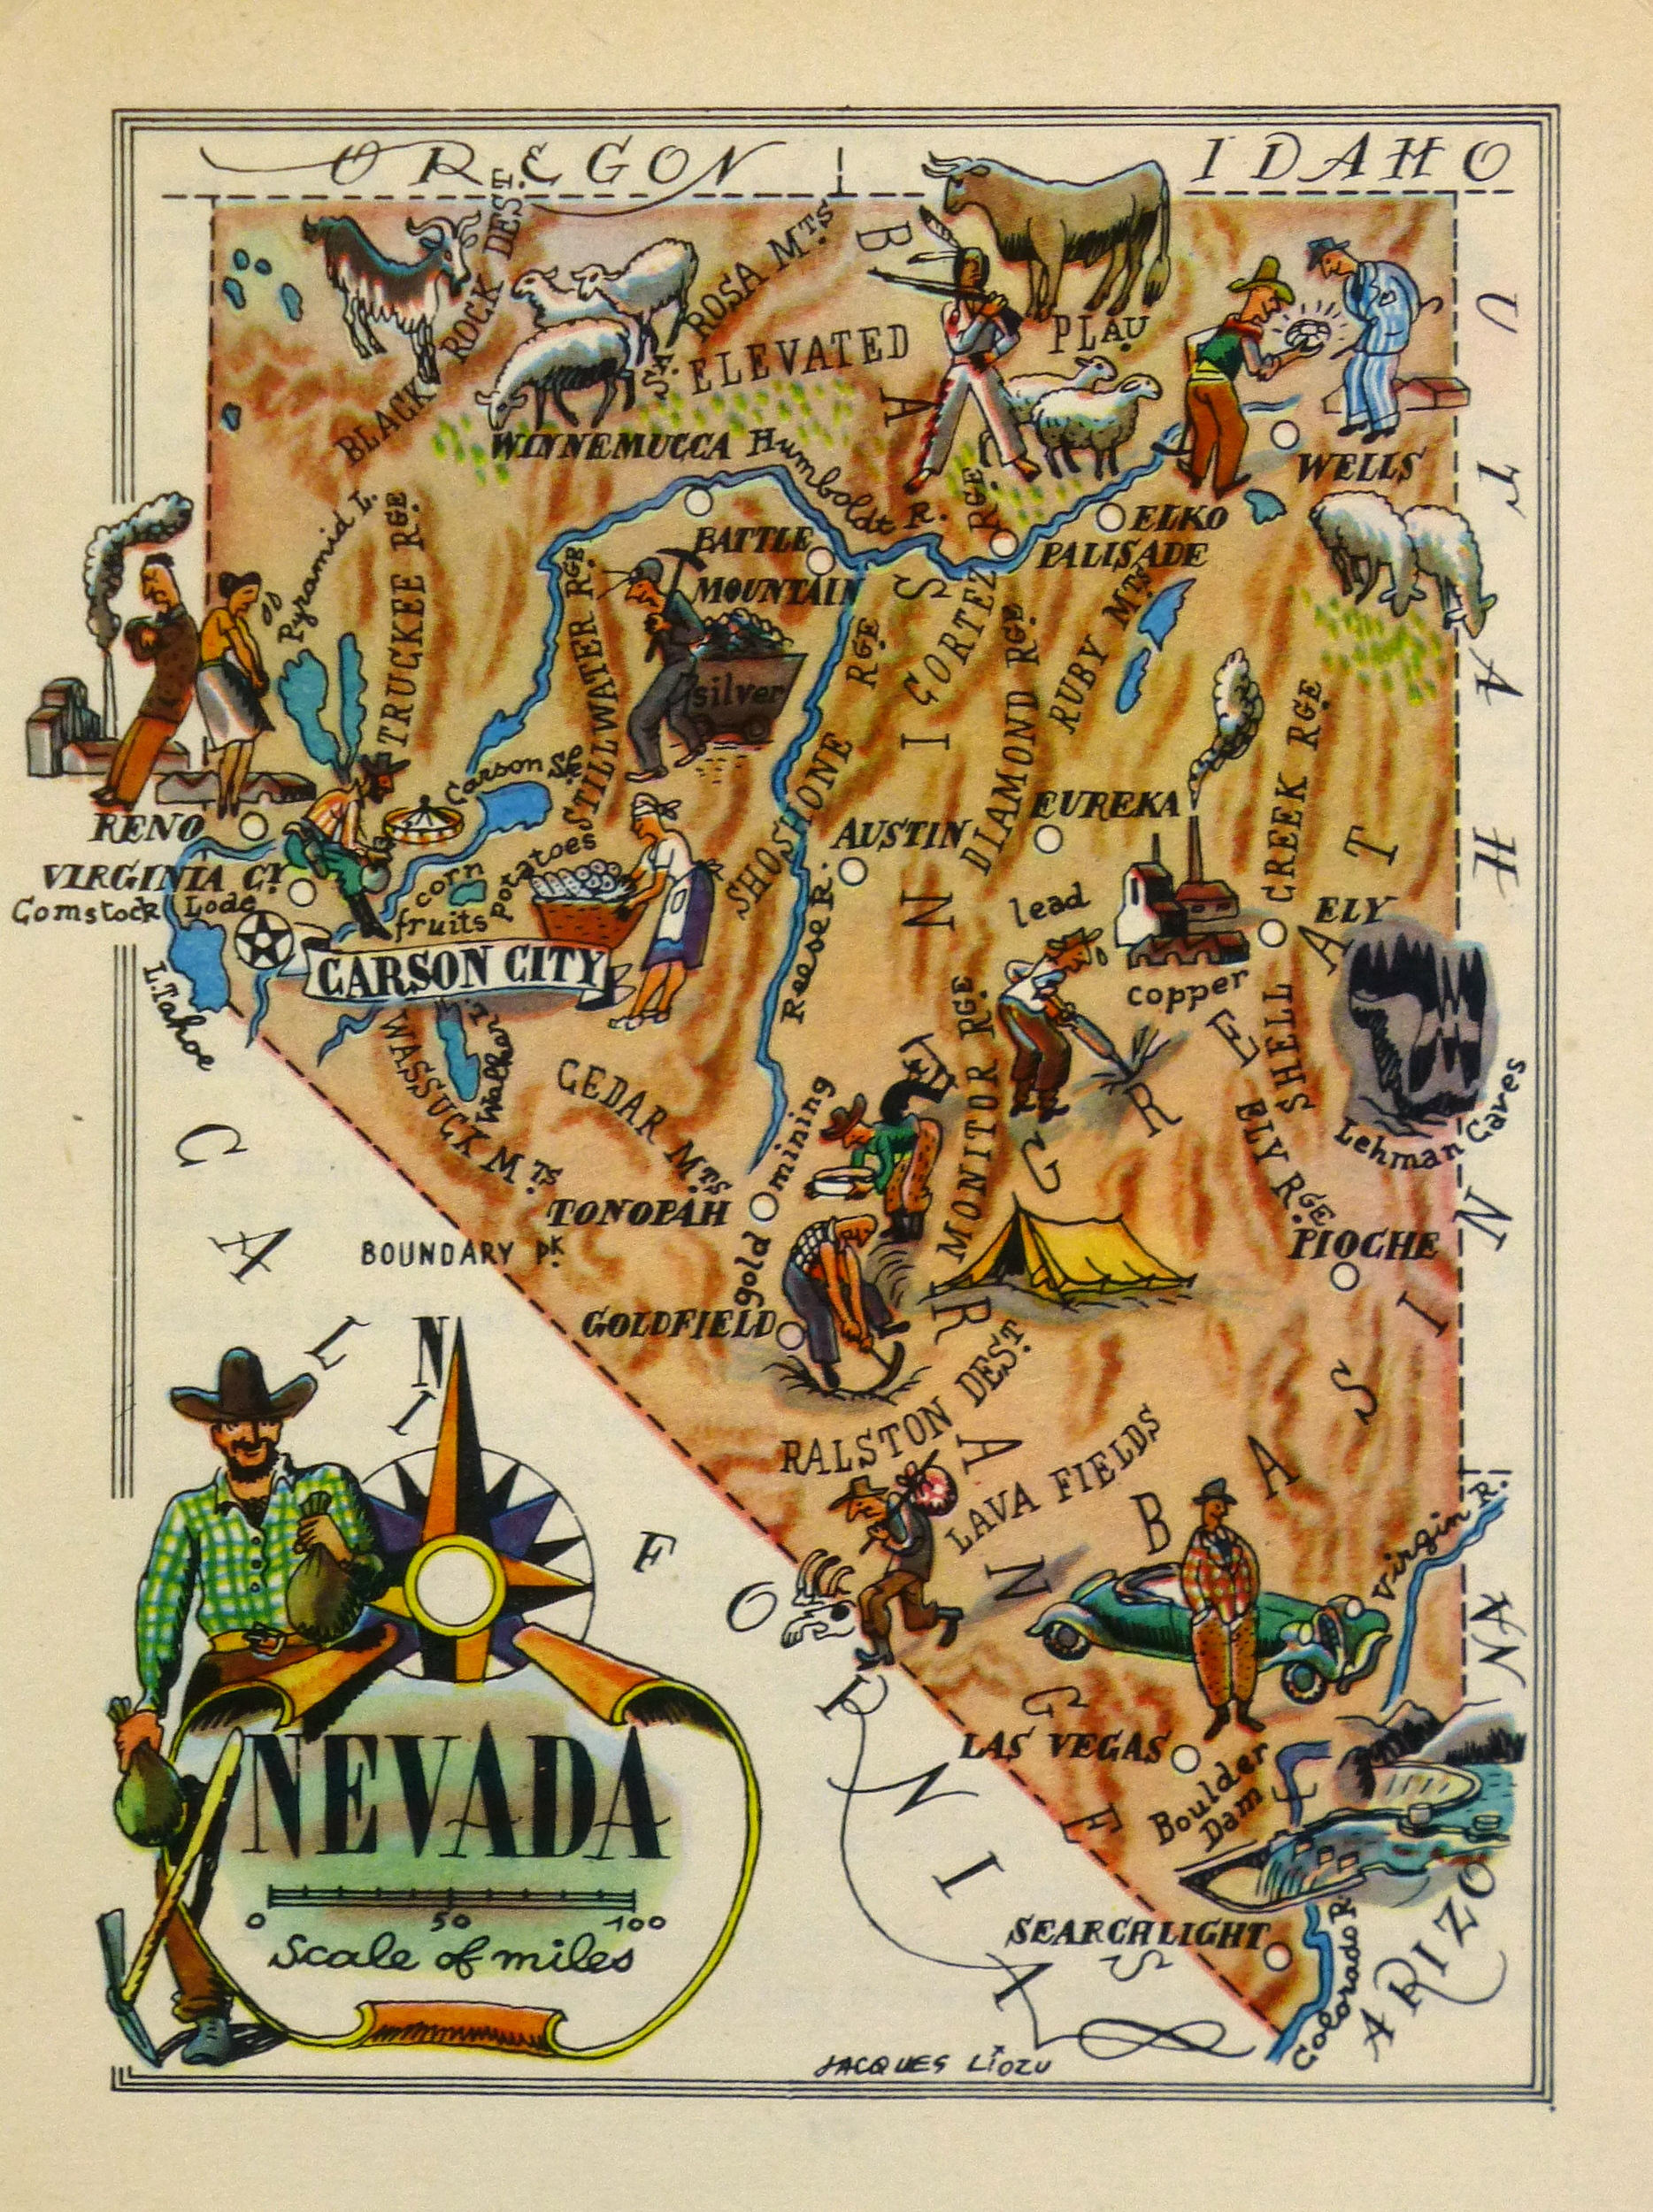 Nevada Pictorial Map, 1946